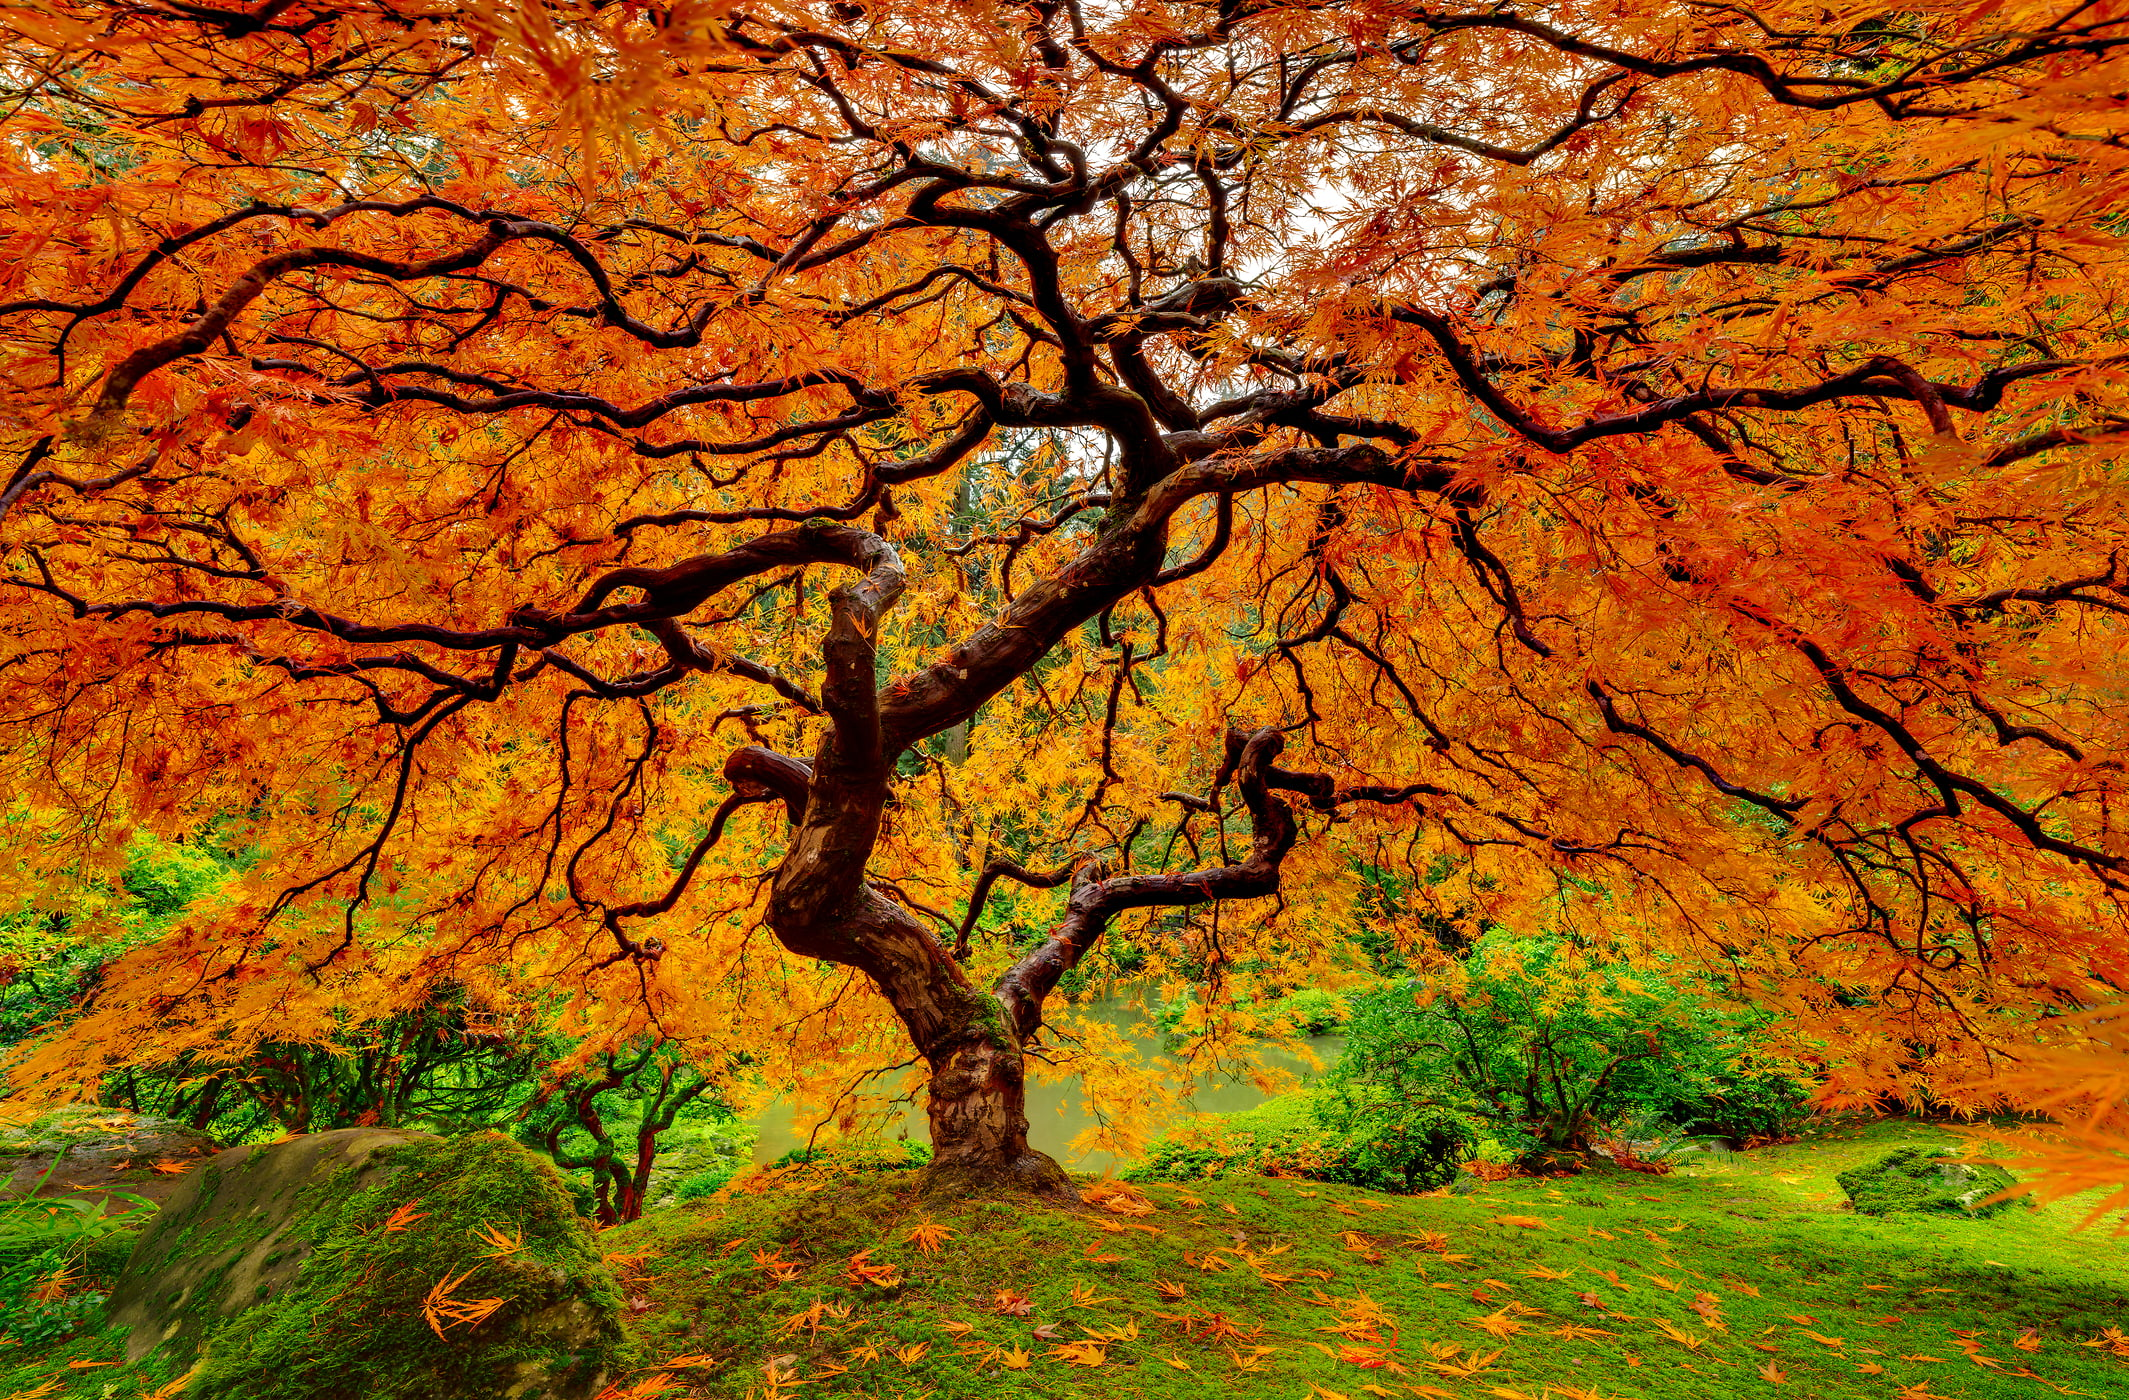 325 megapixels! A very high resolution, large-format VAST photo print of a beautiful tree with autumn foliage; nature photograph created by Chris Collacott in Portland, Oregon, USA